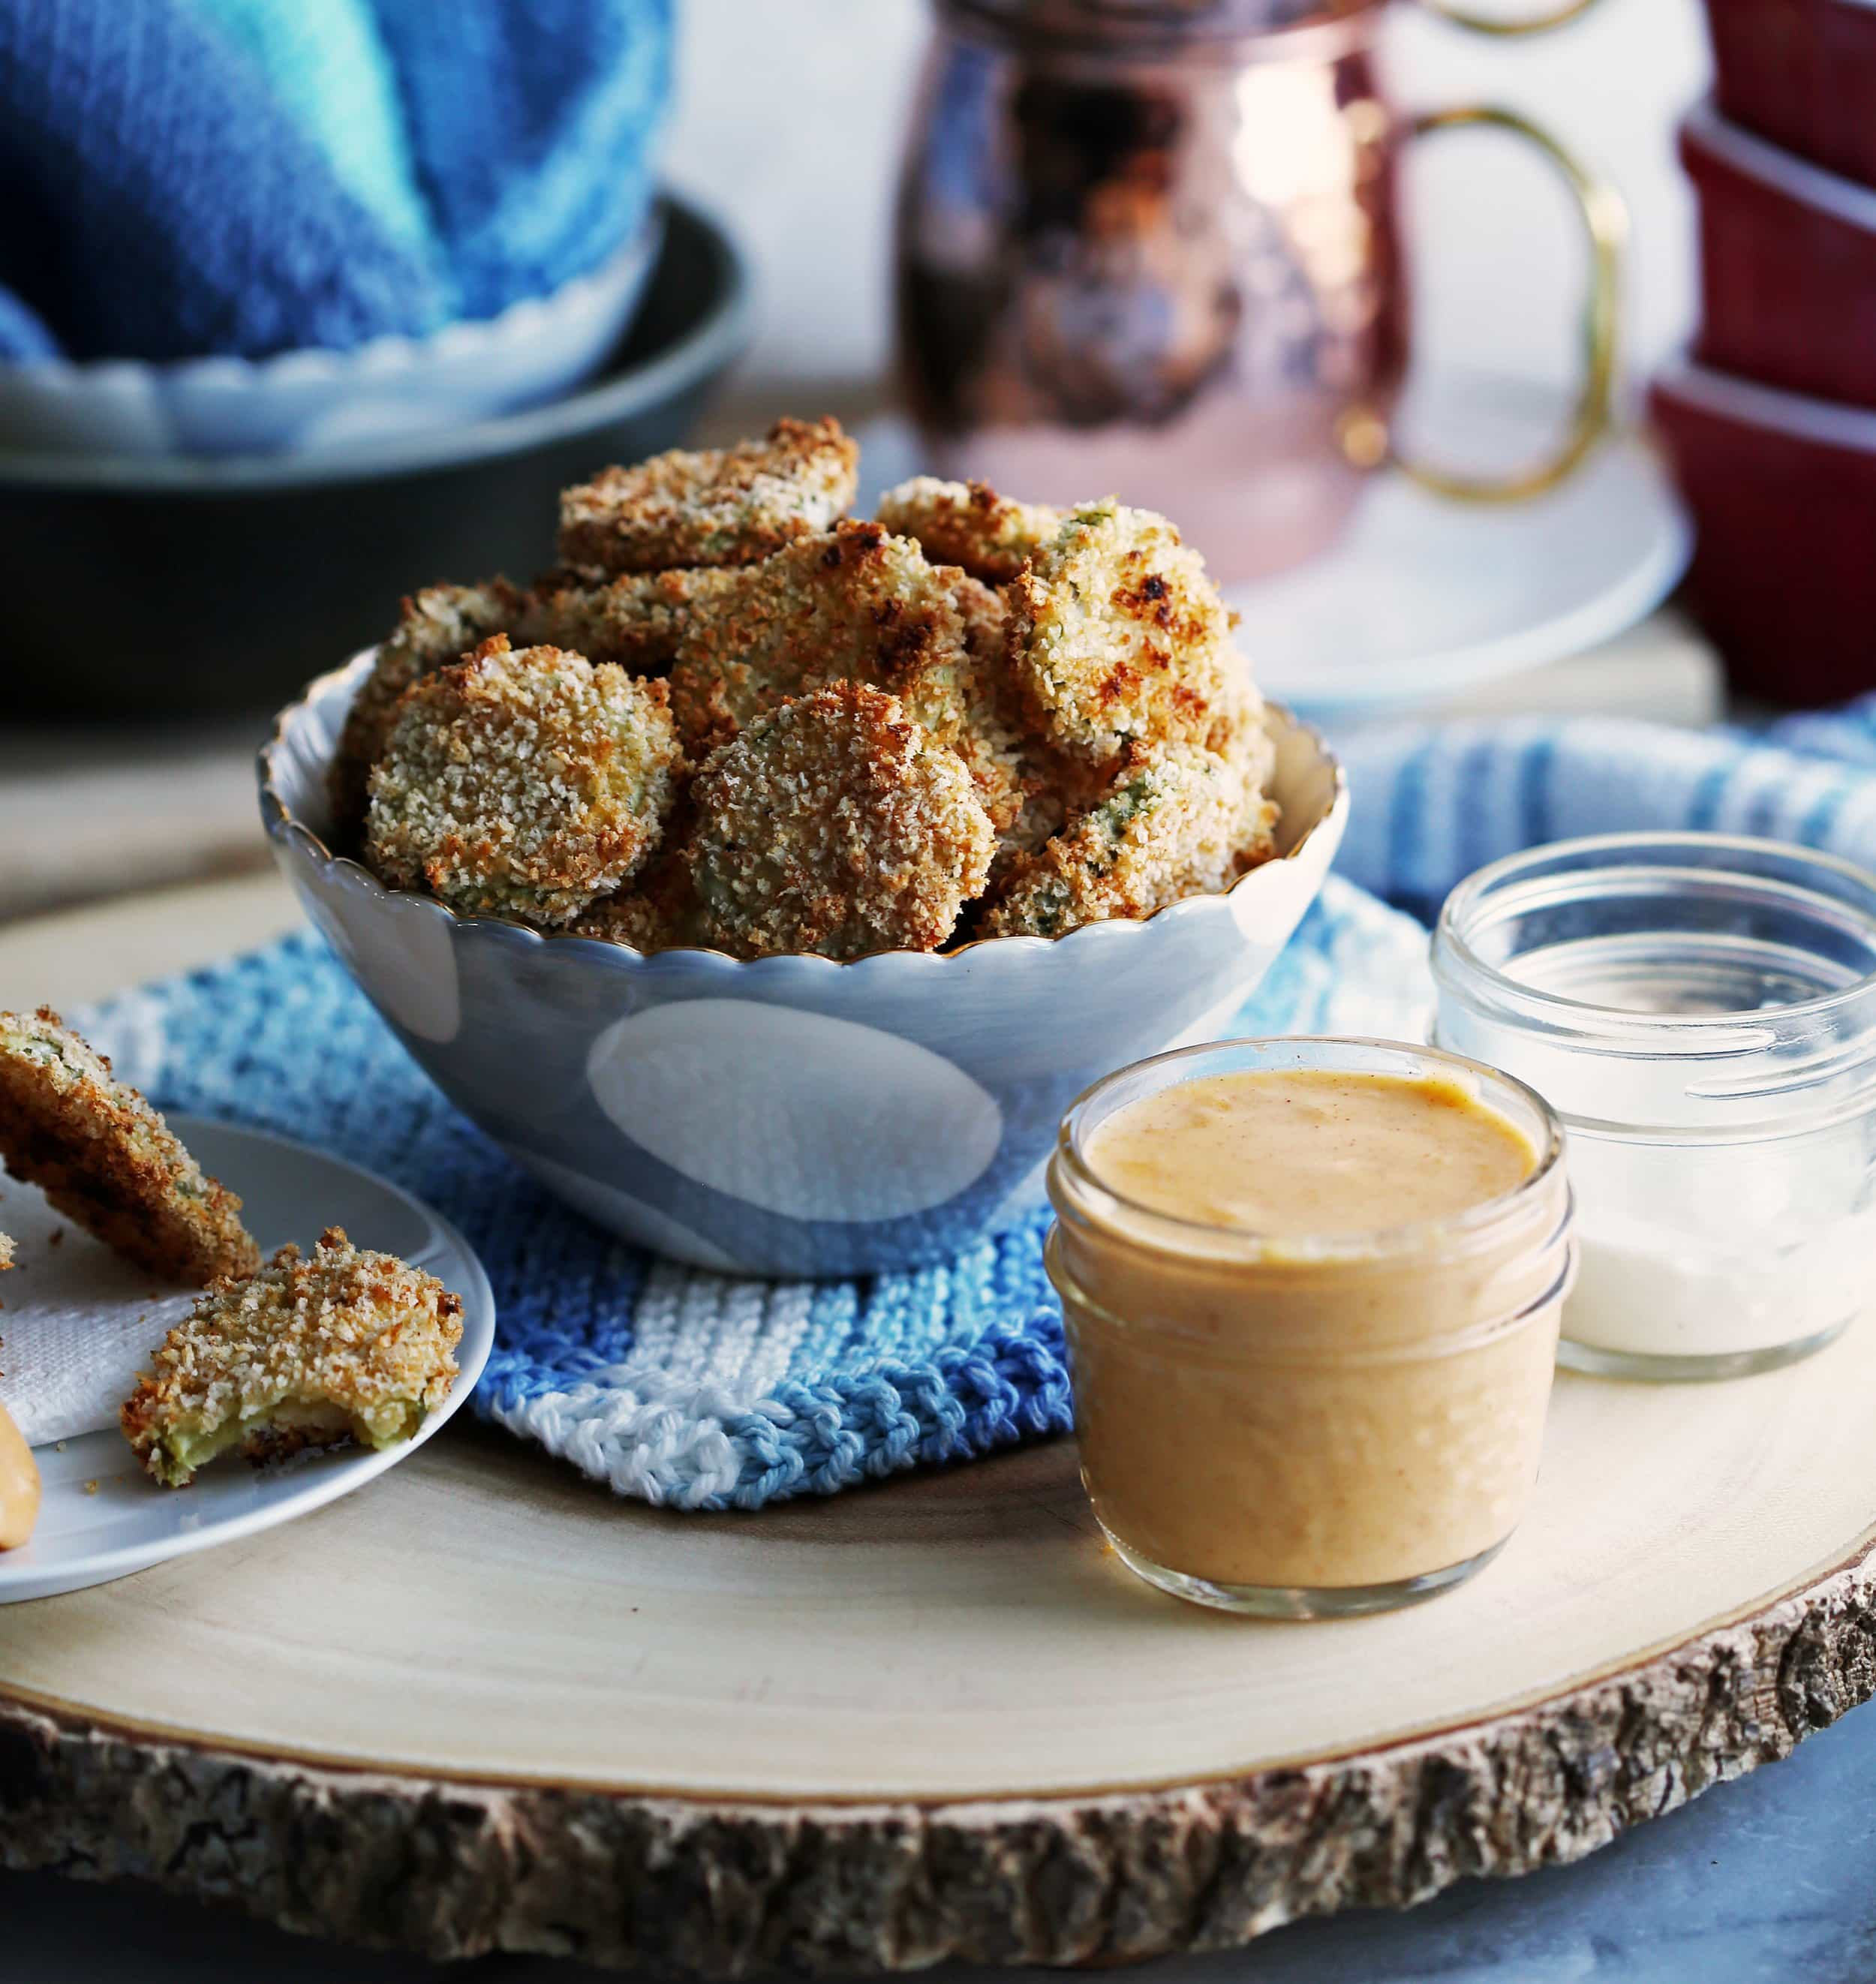 A blue bowl of crispy oven-fried pickles slices with a jar of creamy cheddar dip on the side.